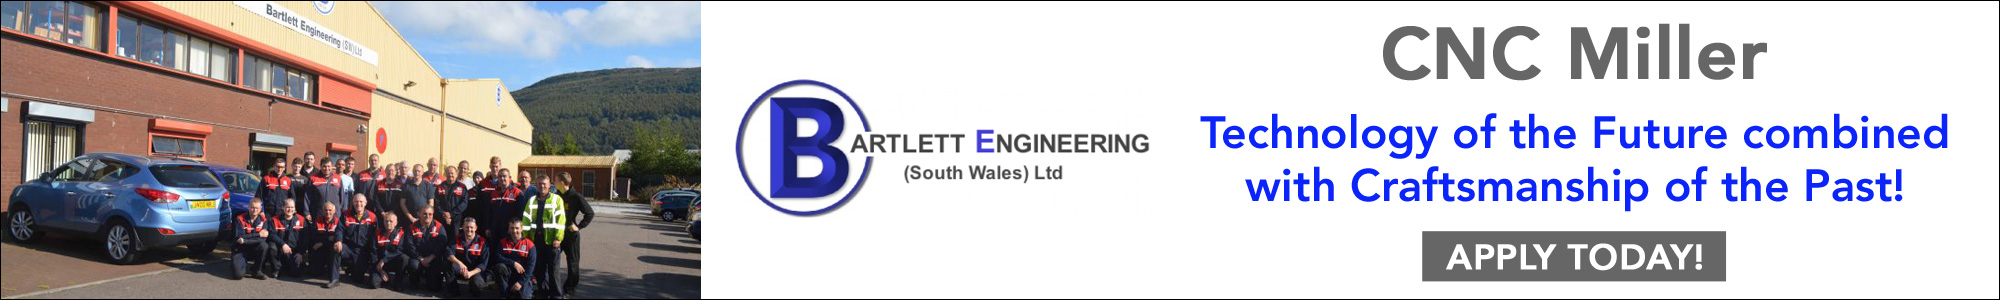 Bartlett Engineering (South Wales) Ltd